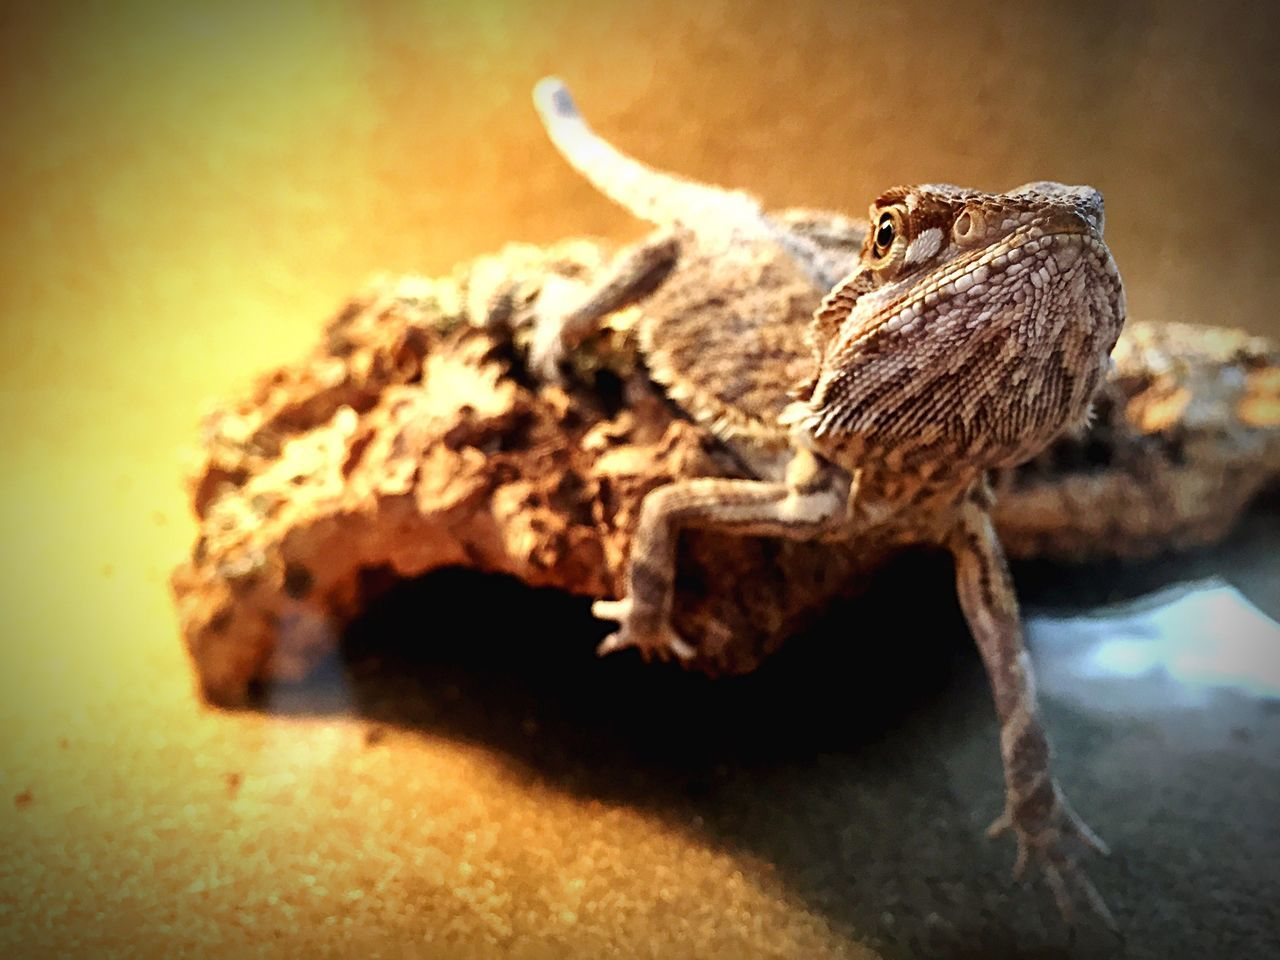 Stumpy Bearded Dragon Lizard Check This Out Enjoying Life Dragons Bearded Dragons Pets Beard Hello World Dragon Wood